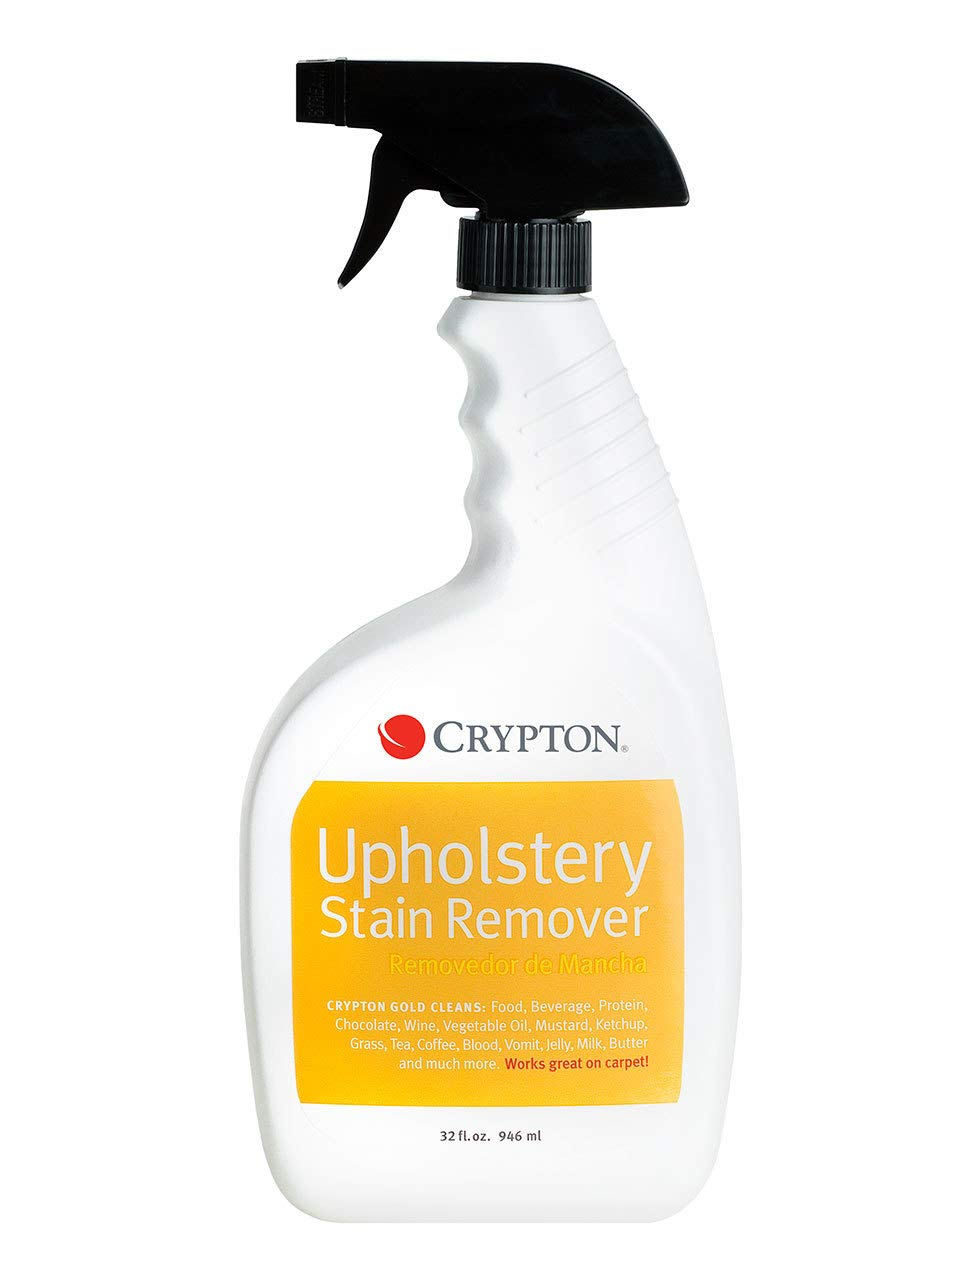 Crypton Gold Upholstery Stain Remover – Food, Beverage, Protein & more (32 fl. oz.)